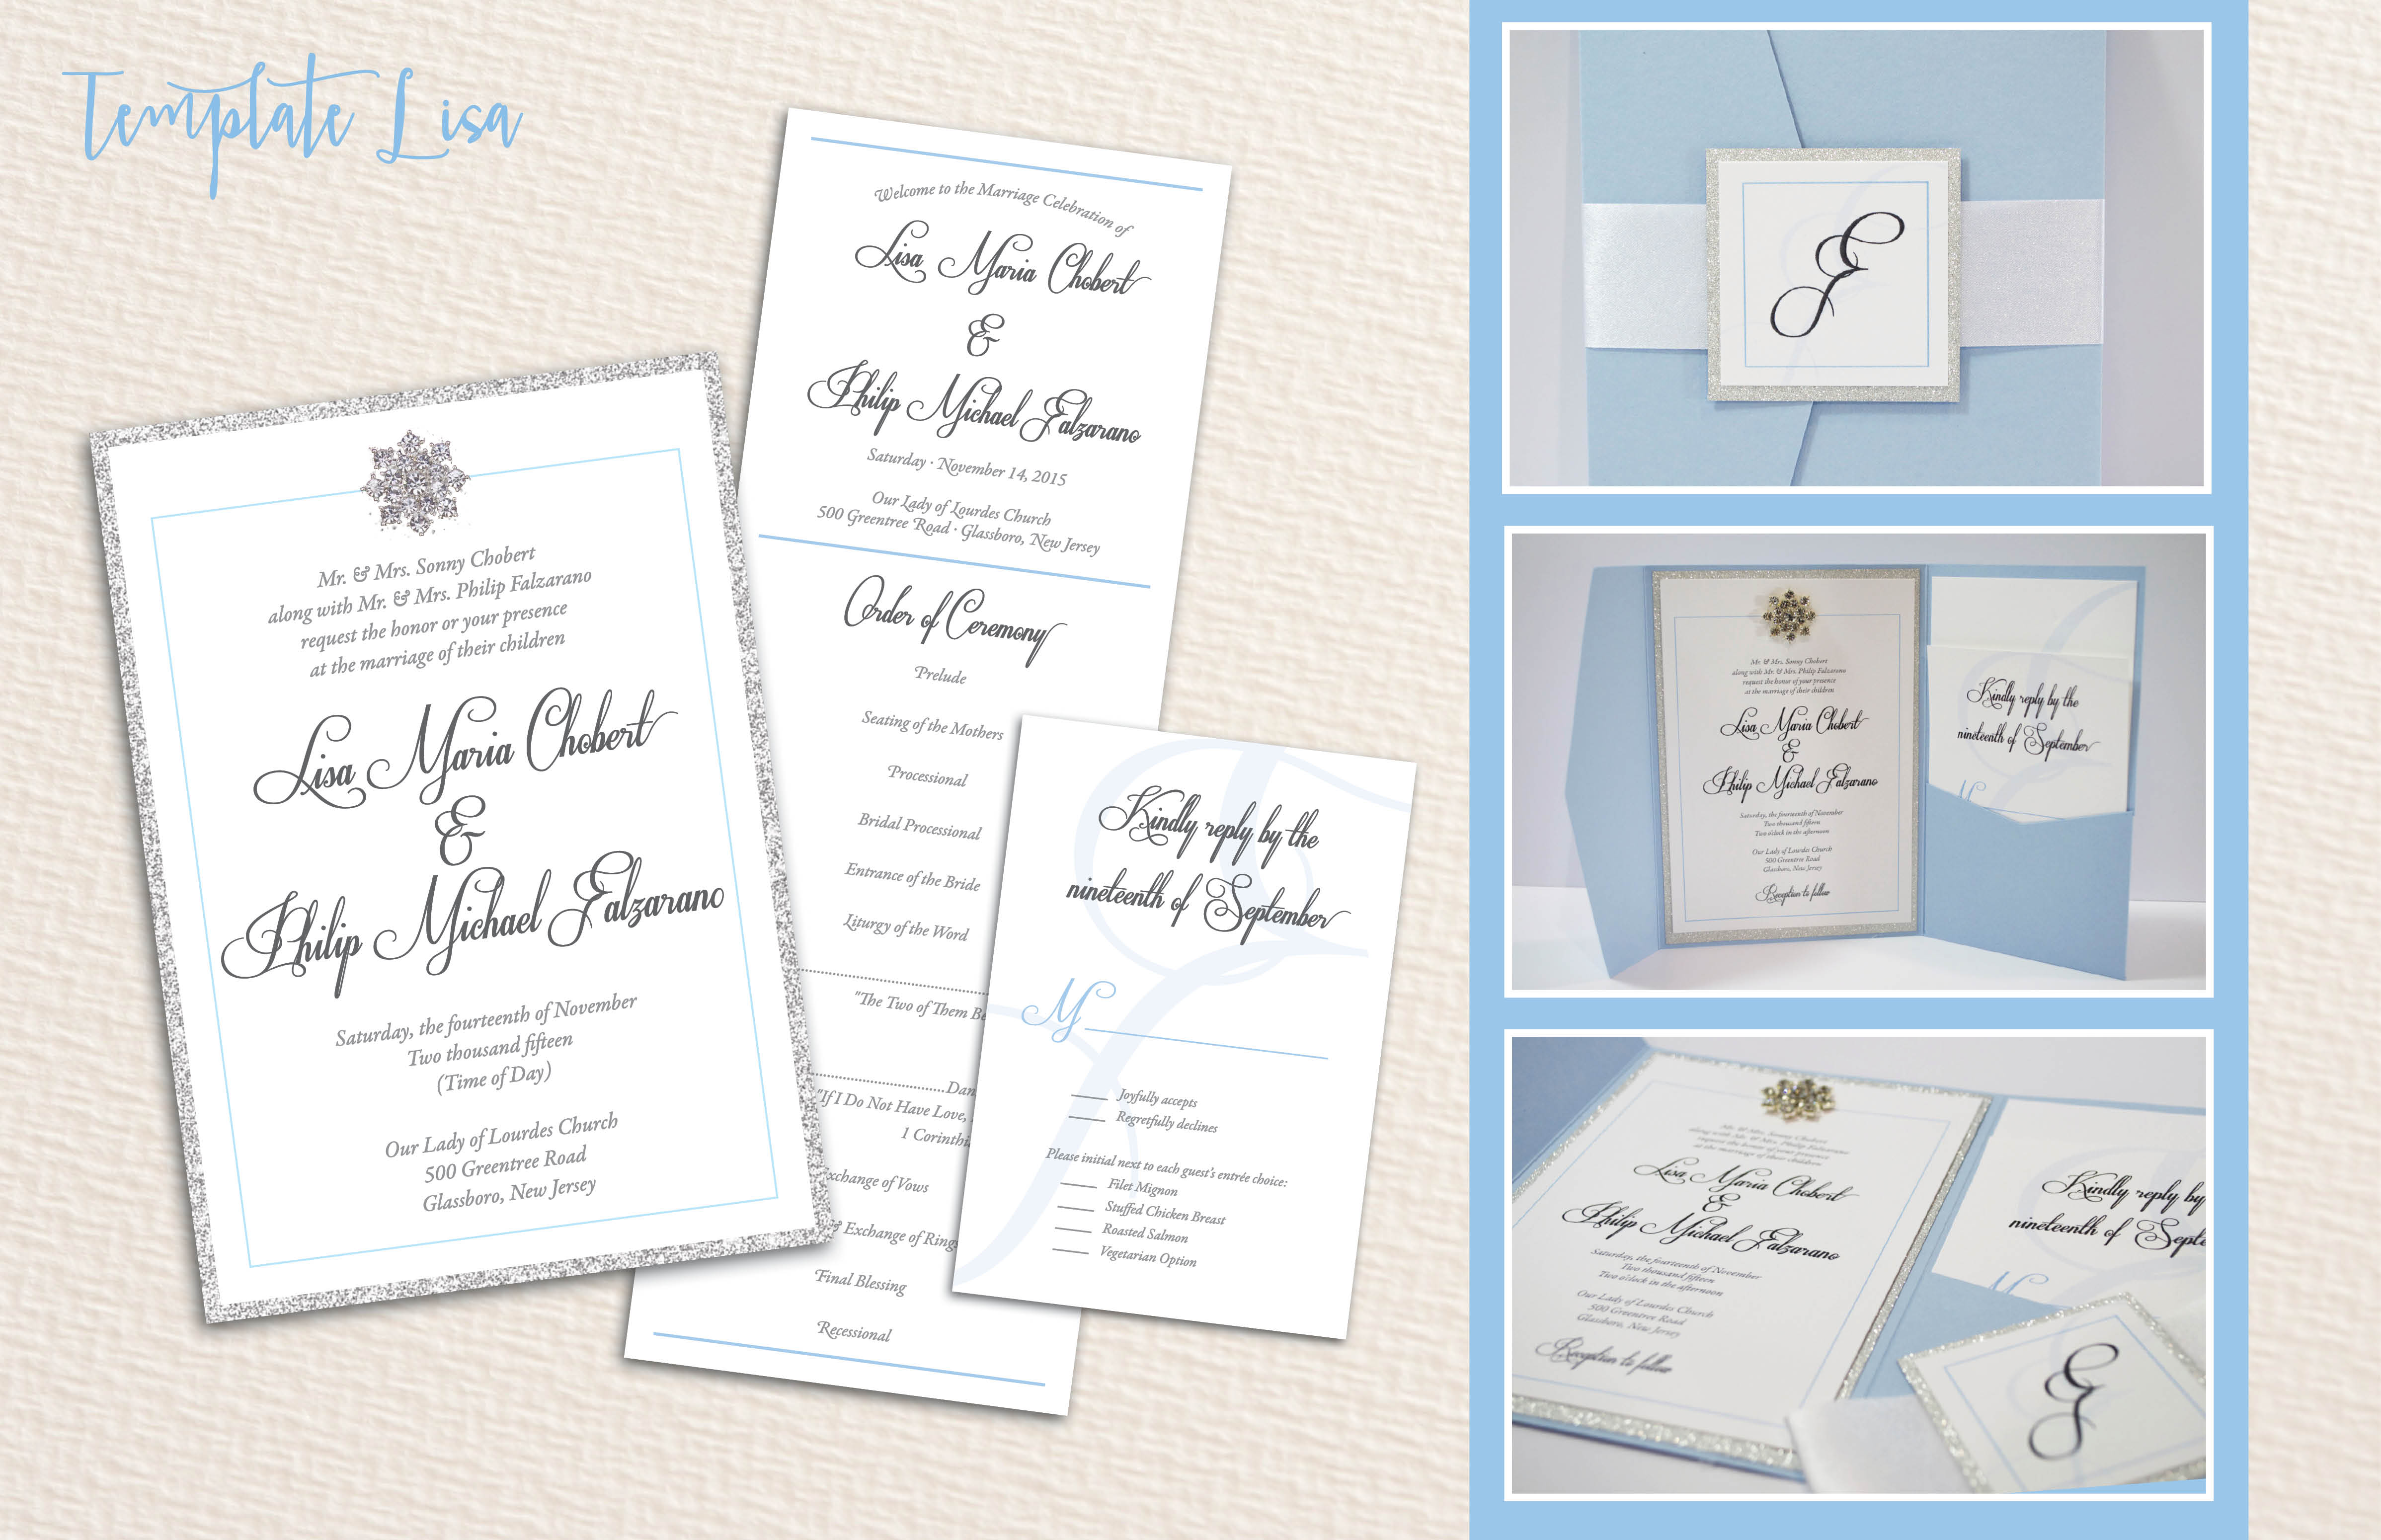 Weddings by Bellia | Bellia South Jersey Printing